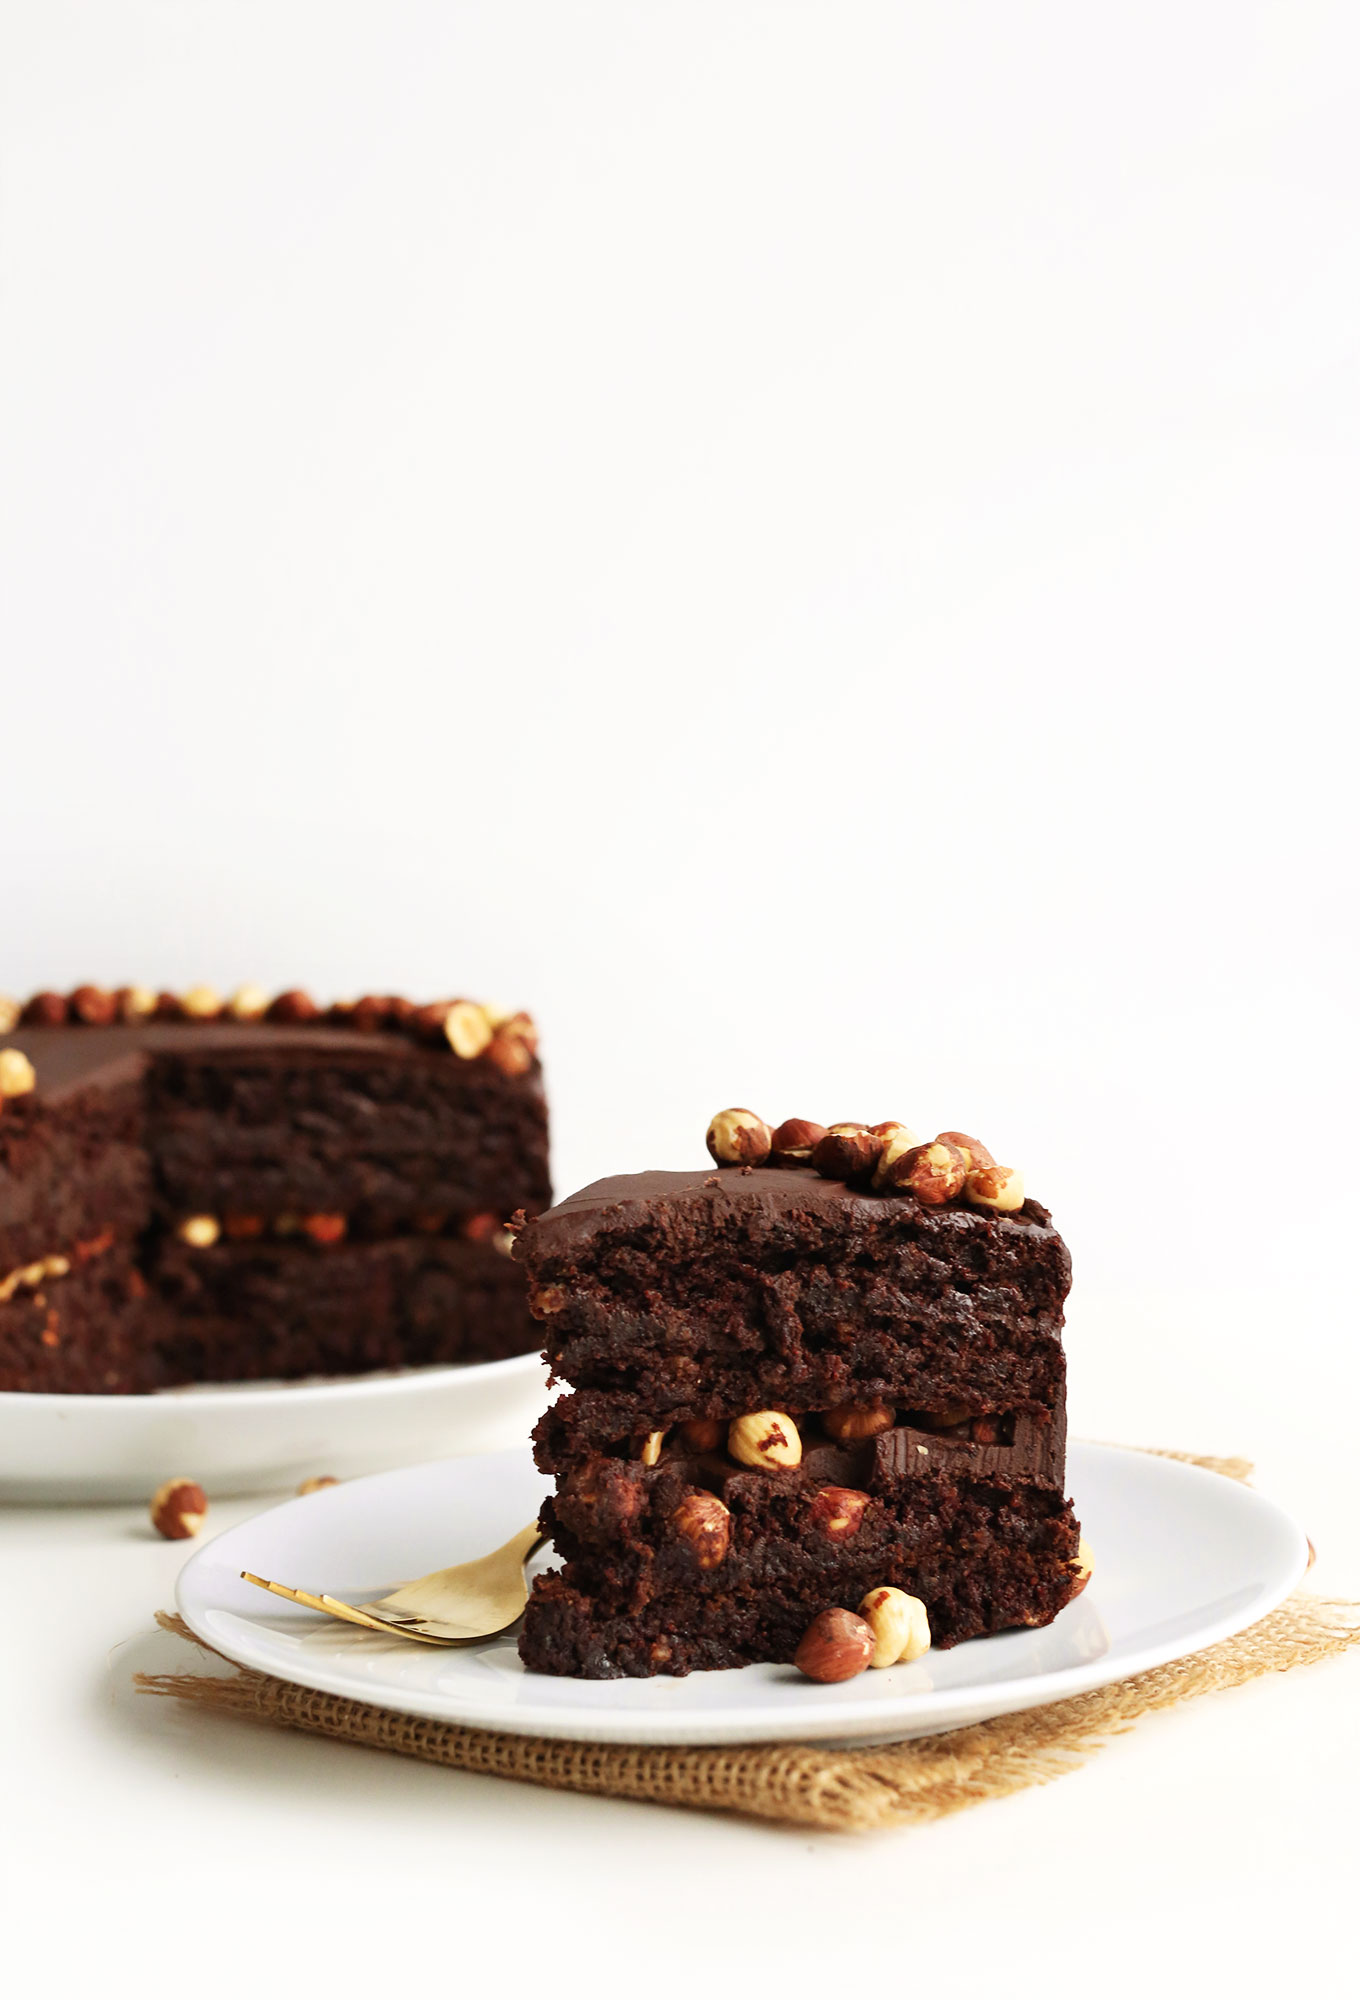 Slice of super rich gluten-free Vegan Chocolate Hazelnut Cake for dessert